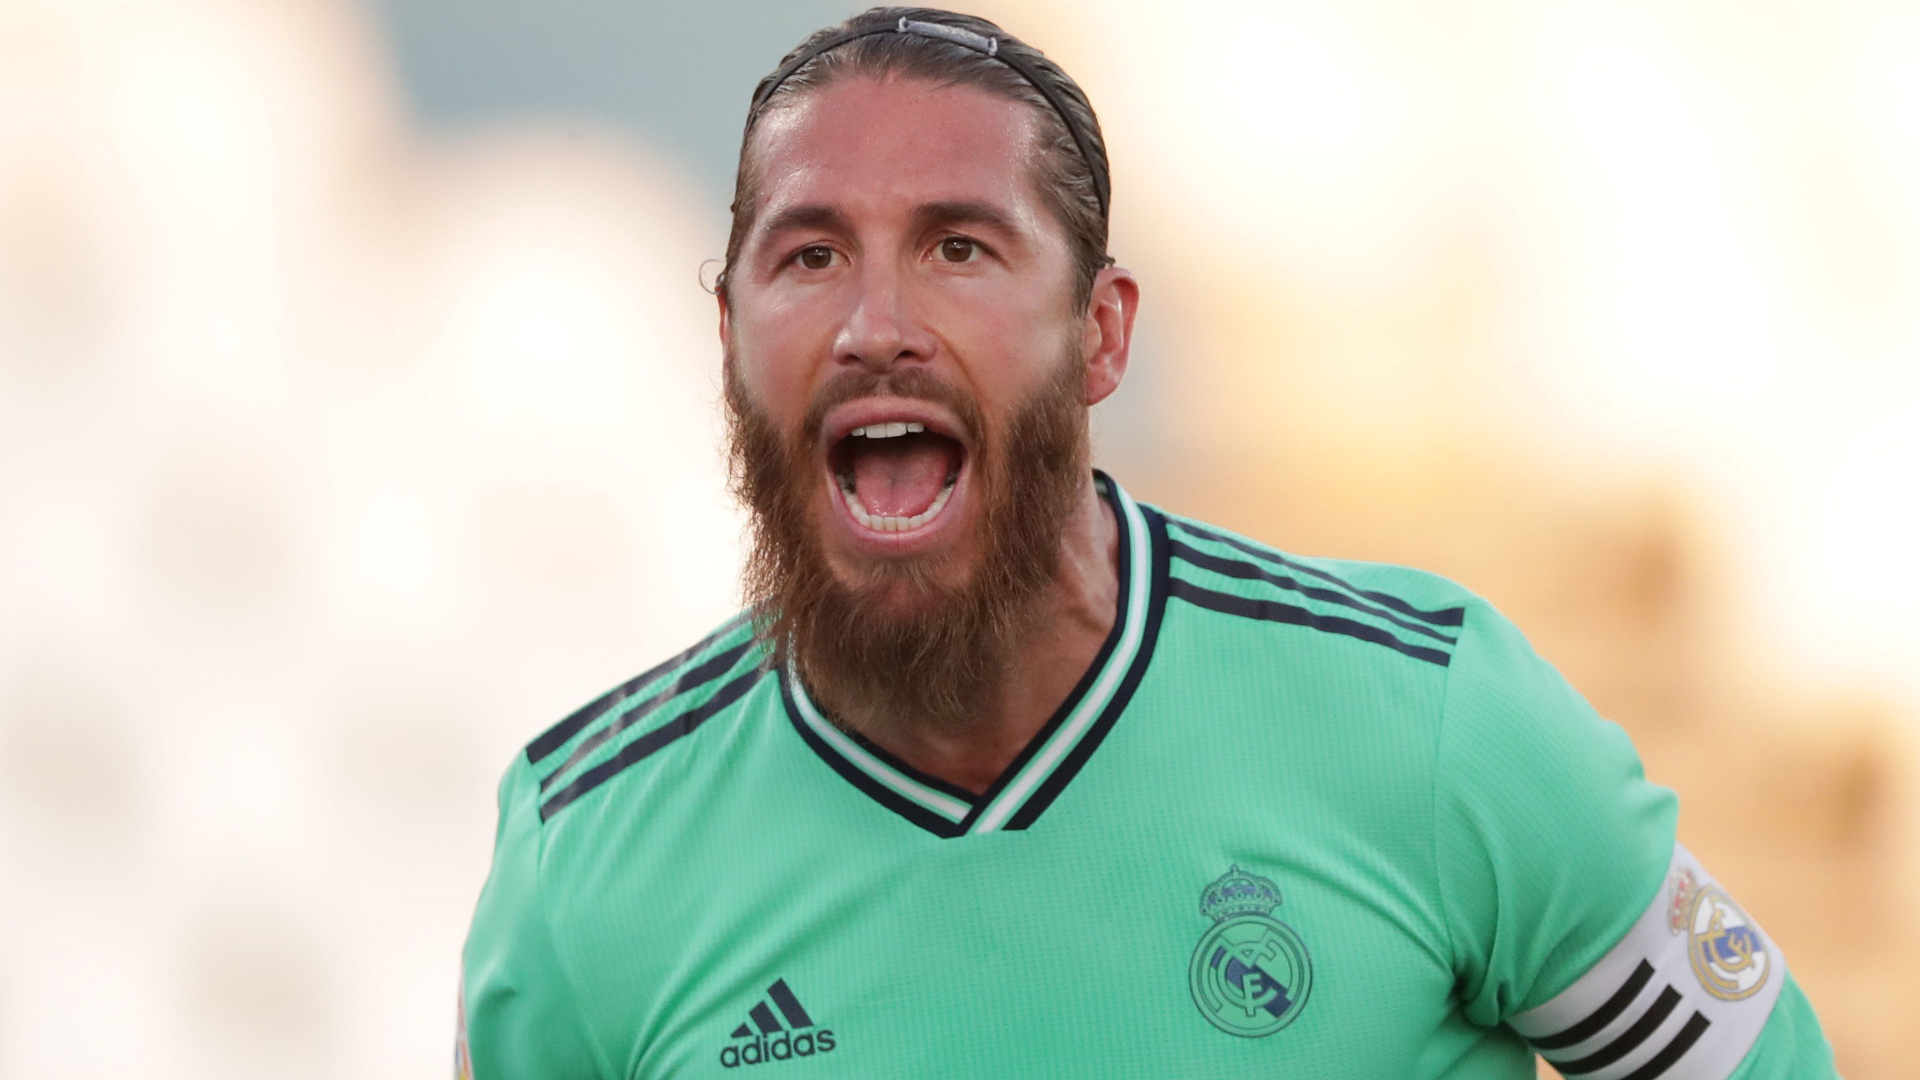 Modric: 'Rock' Ramos is a phenomenon - the best defender in the world